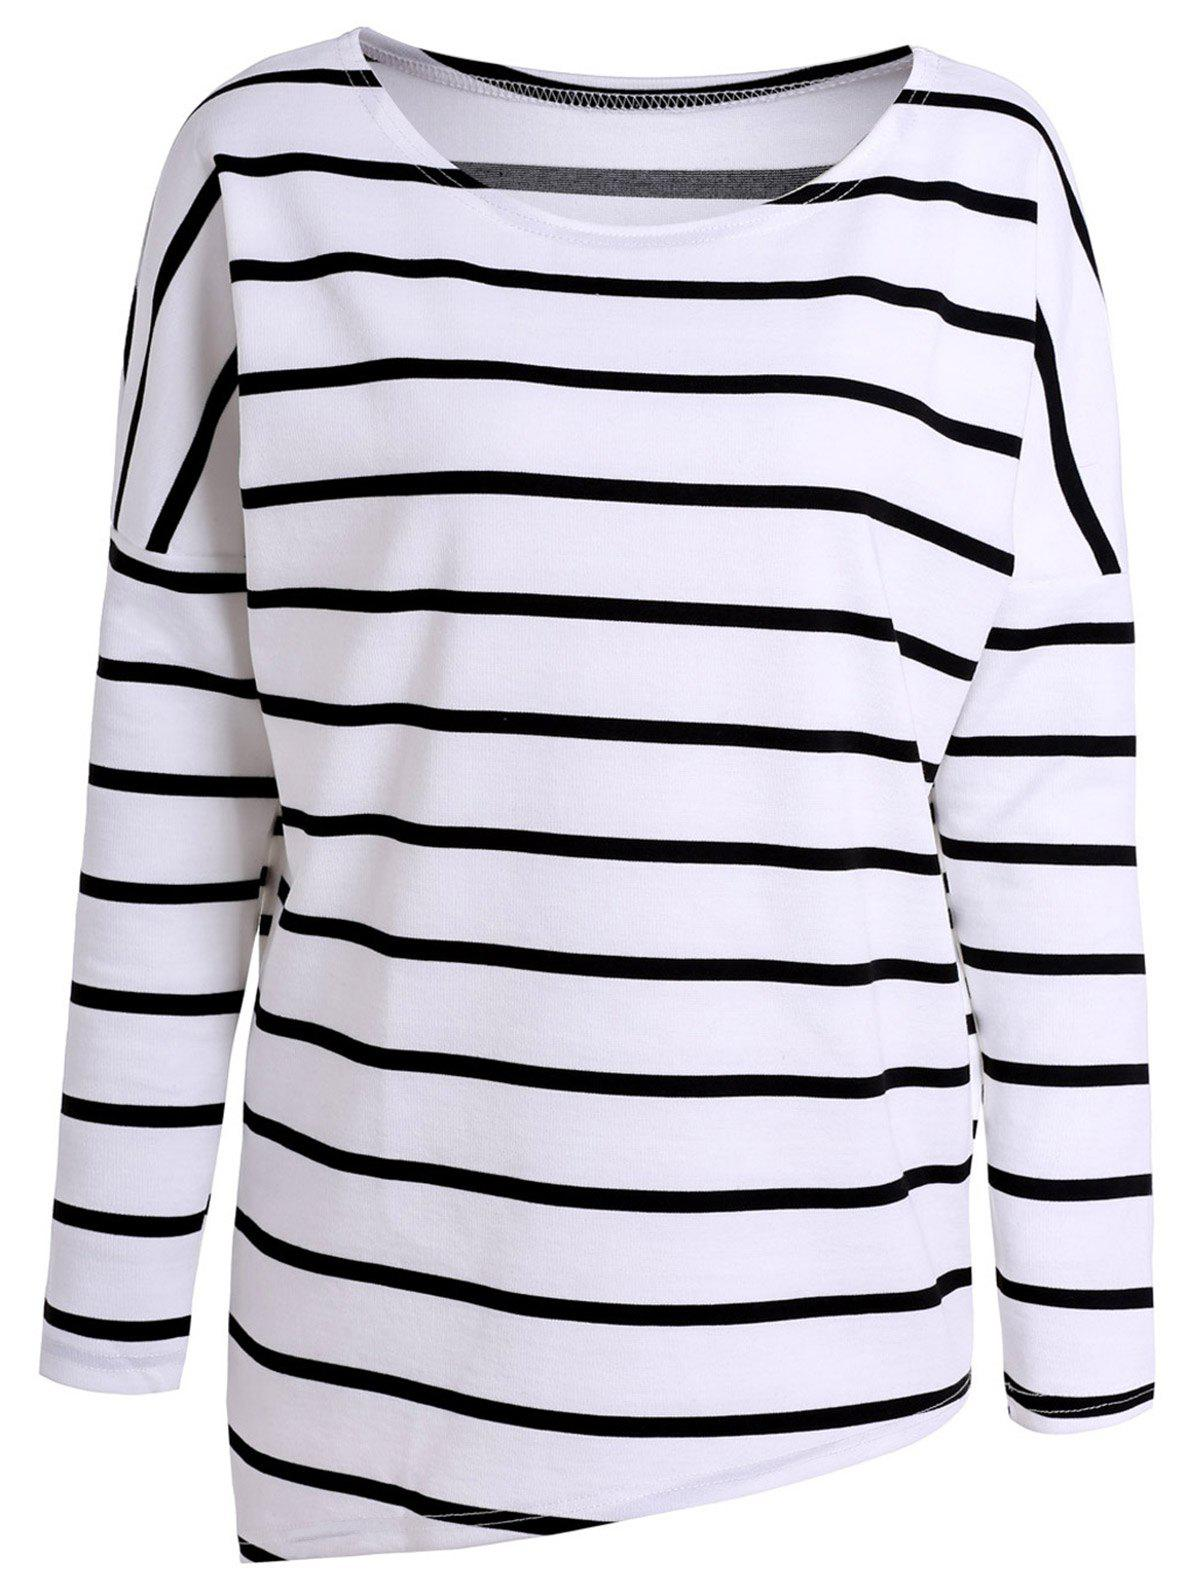 Fashion Simple Style Scoop Neck Long Sleeve Striped T-Shirt For Women